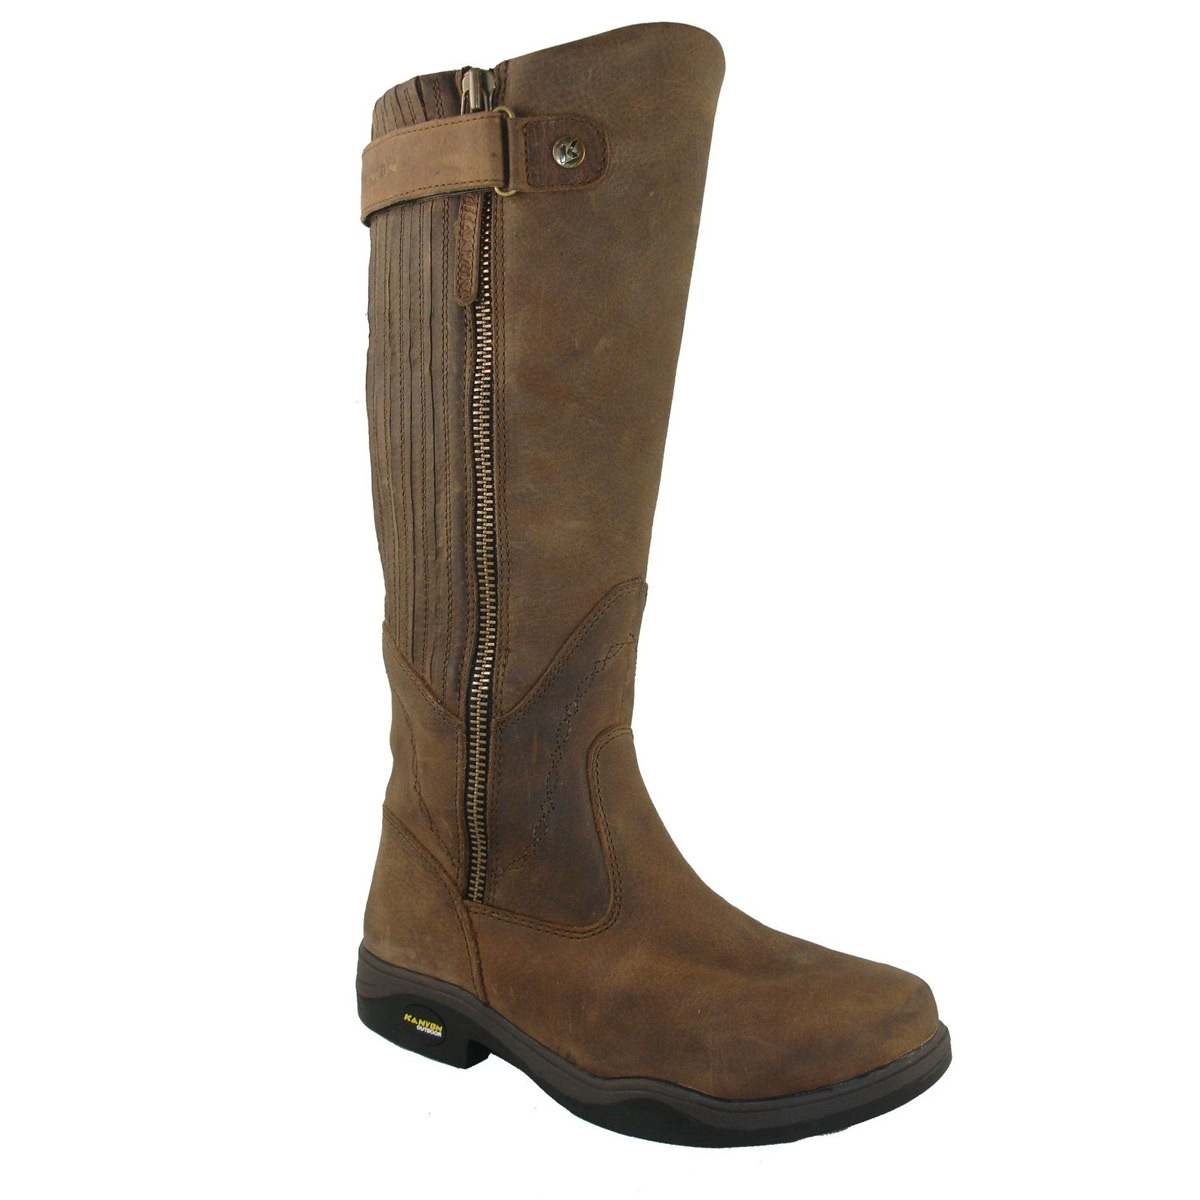 Kanyon Outdoor Gorse X-Rider Boot - Super-Wide (Women's) - Chocolate Wear Good-Looking large discoun